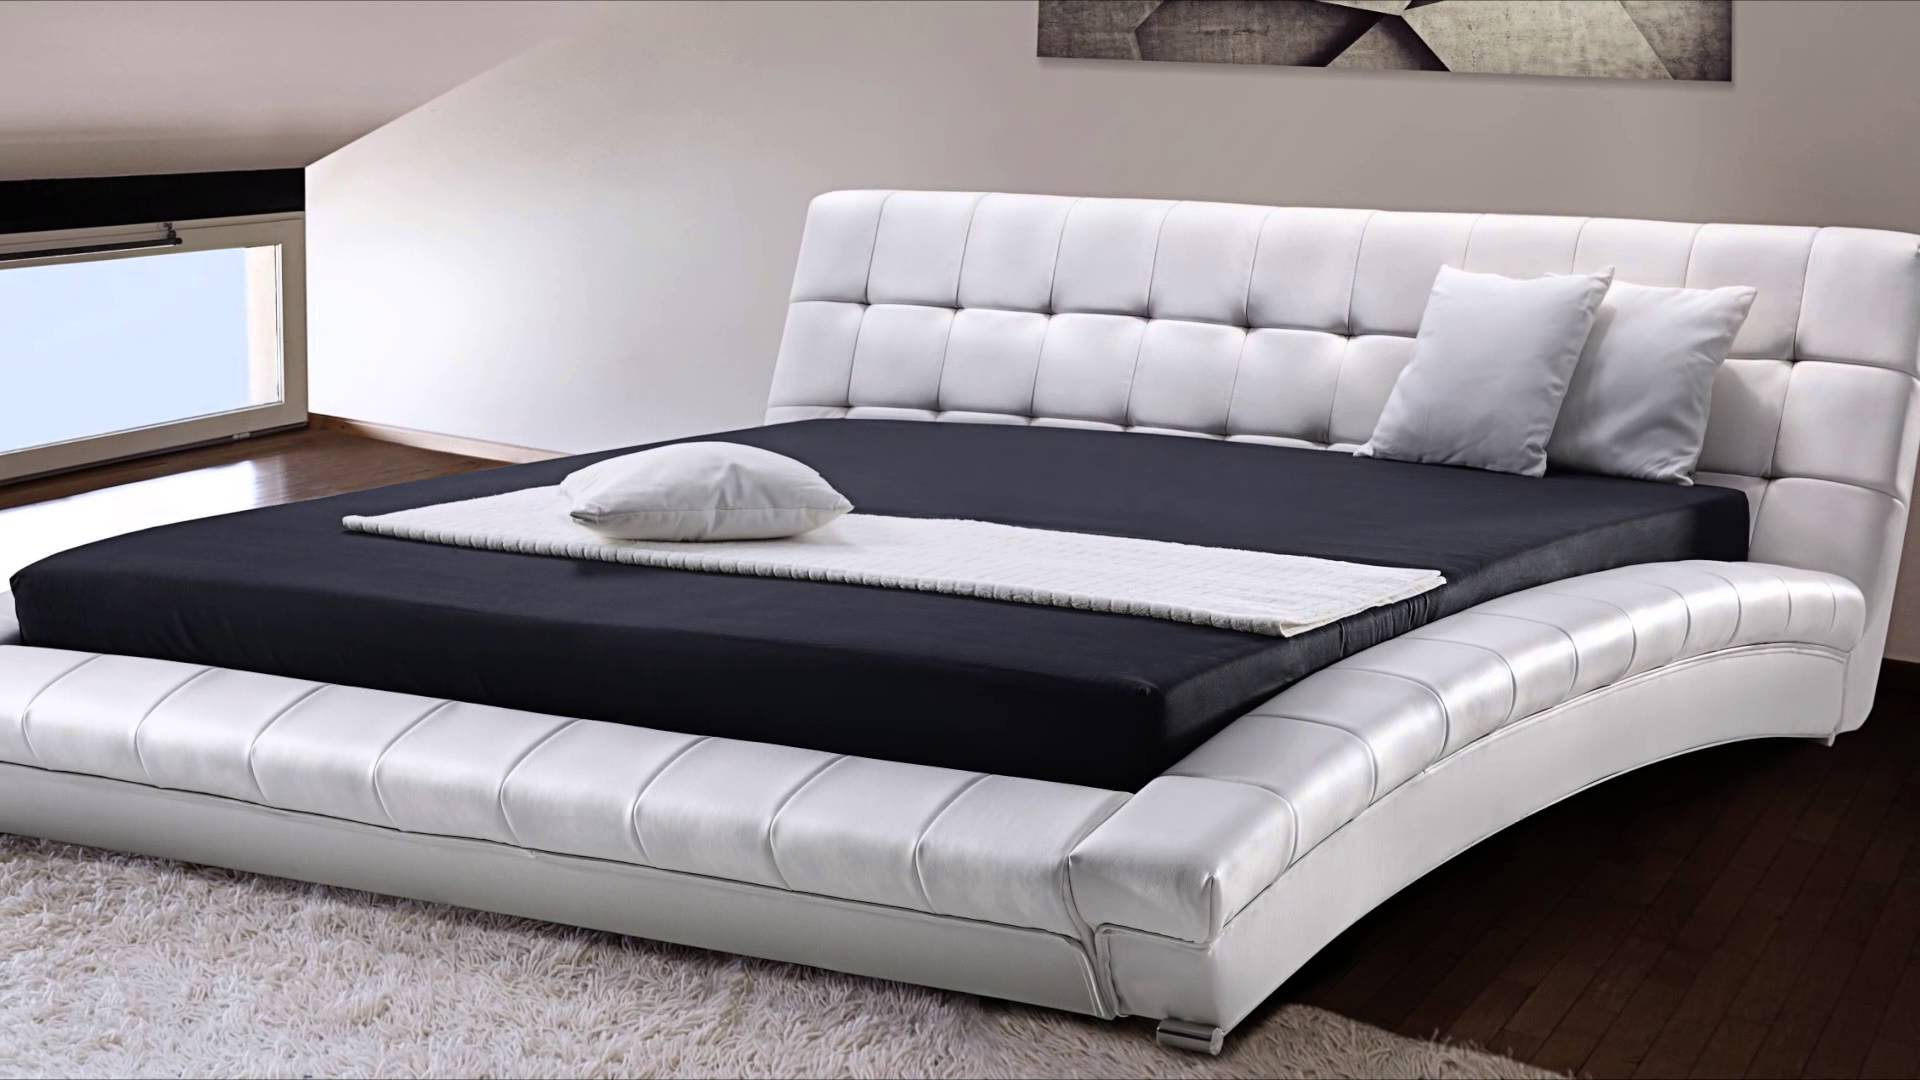 How big is a king size bed mattress Chambre a coucher lit king size